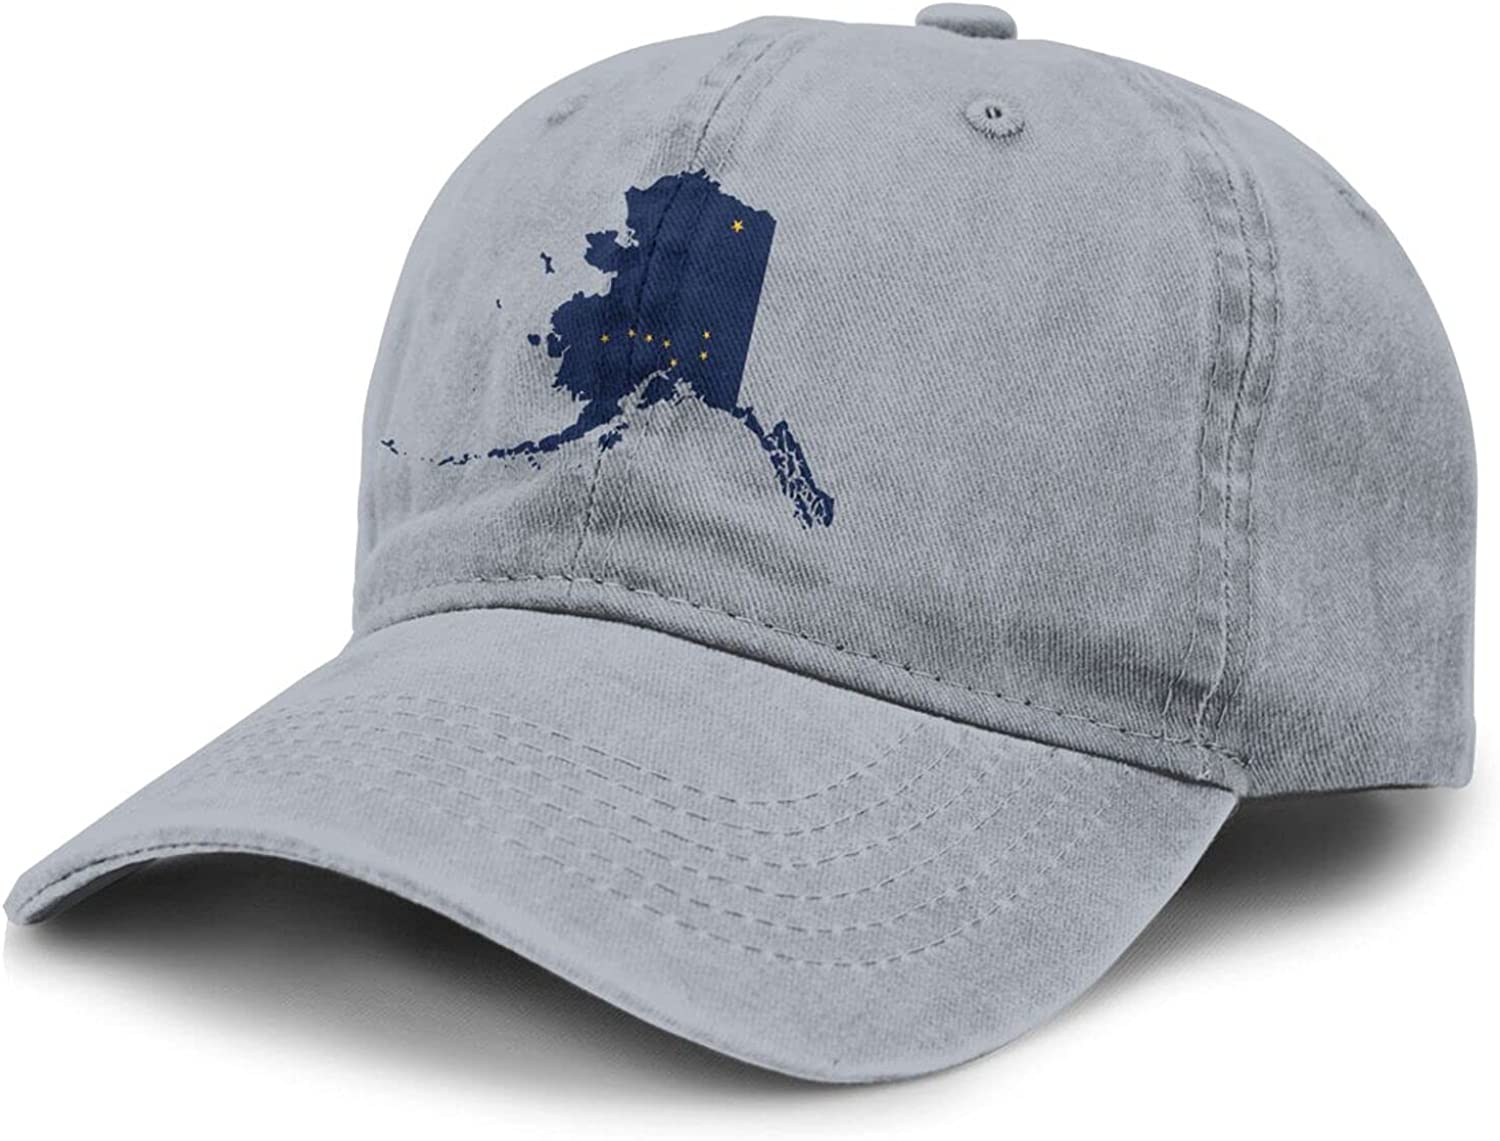 PARKNOTES Alaska Flag Country of America Cheap and Durable Adult Cowboy Hat Unisex